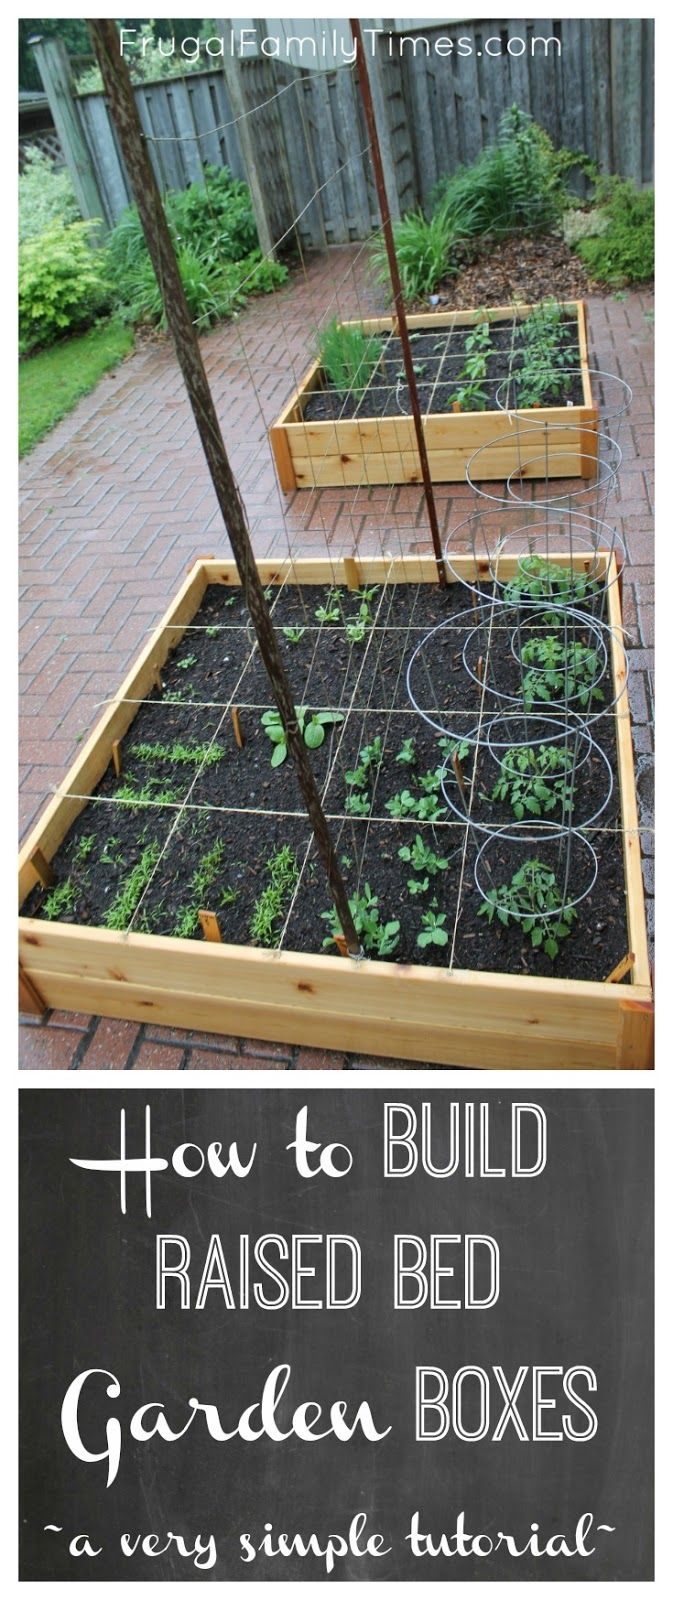 How to build simple raised garden beds a cheap and easy diy ideas